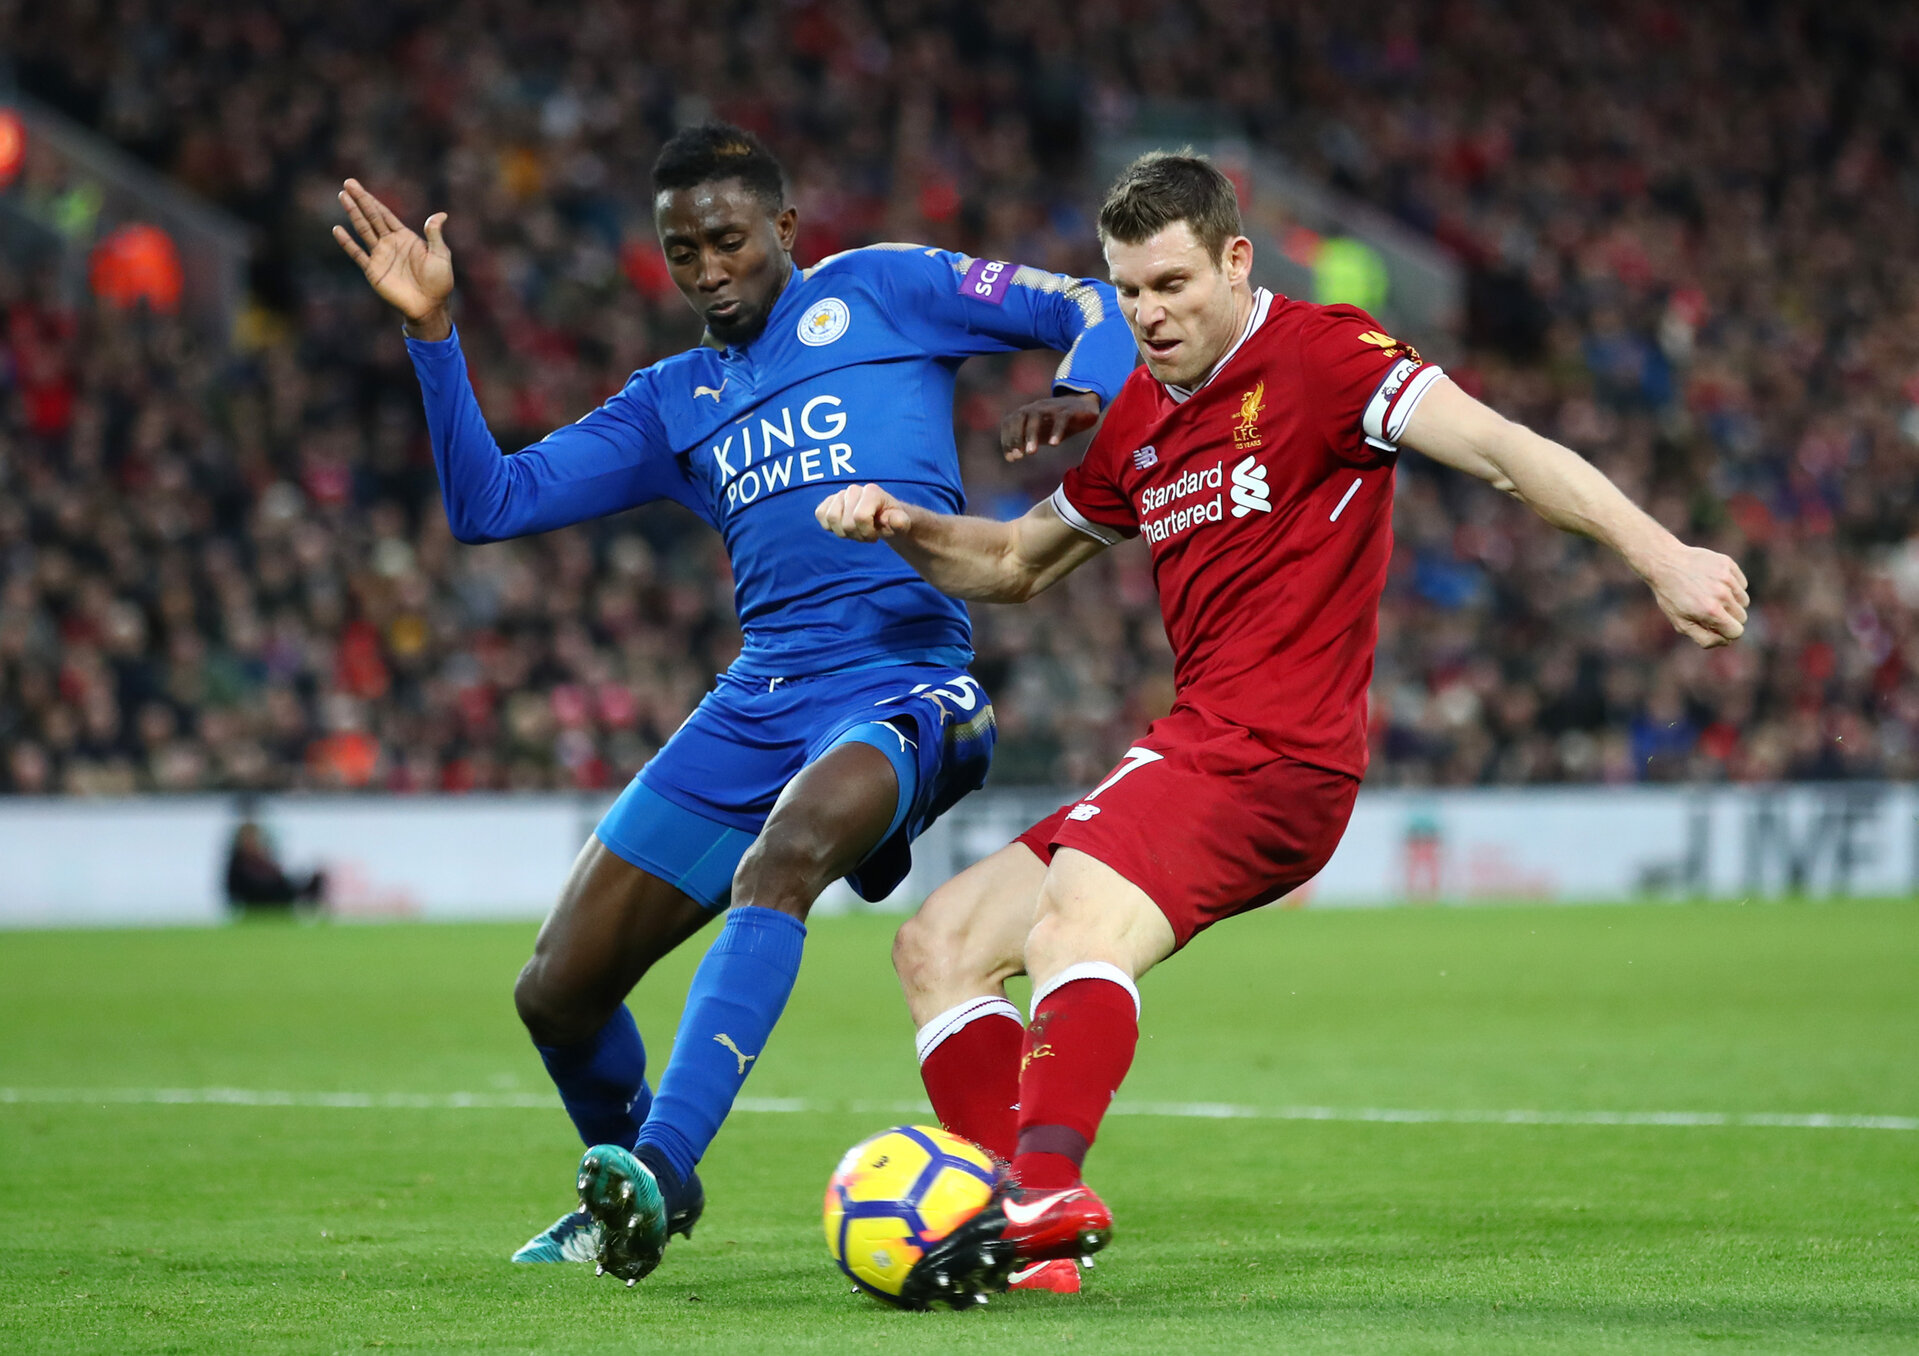 LIVERPOOL, ENGLAND - DECEMBER 30:  James Milner of Liverpool is closed down by Wilfred Ndidi of Leicester City during the Premier League match between Liverpool and Leicester City at Anfield on December 30, 2017 in Liverpool, England.  (Photo by Clive Brunskill/Getty Images)